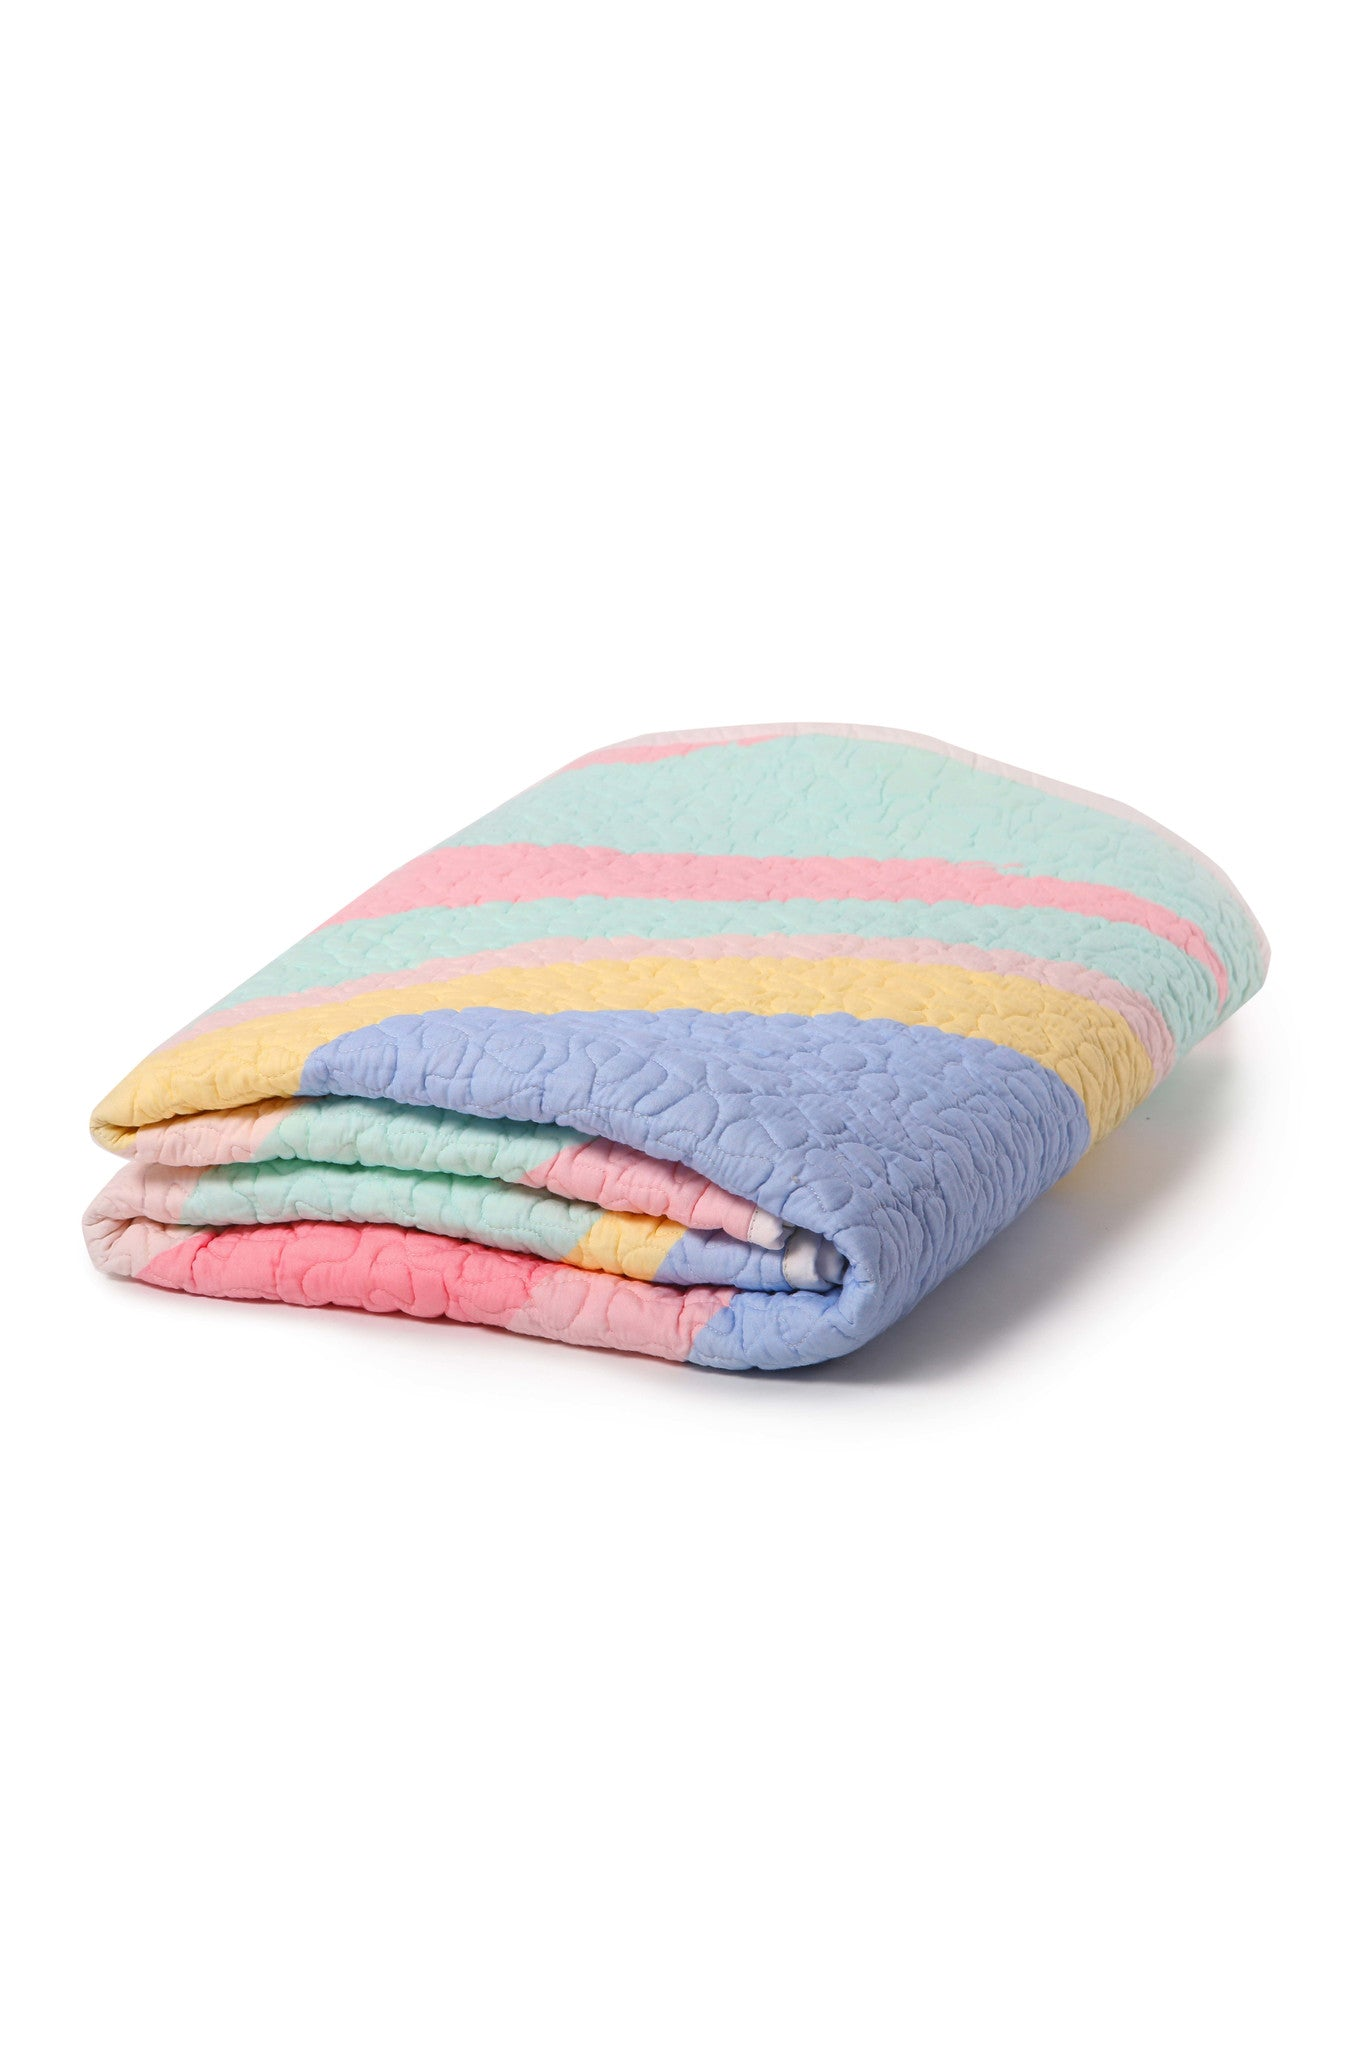 Unicorn Utopia Organic Cotton Quilted Blanket